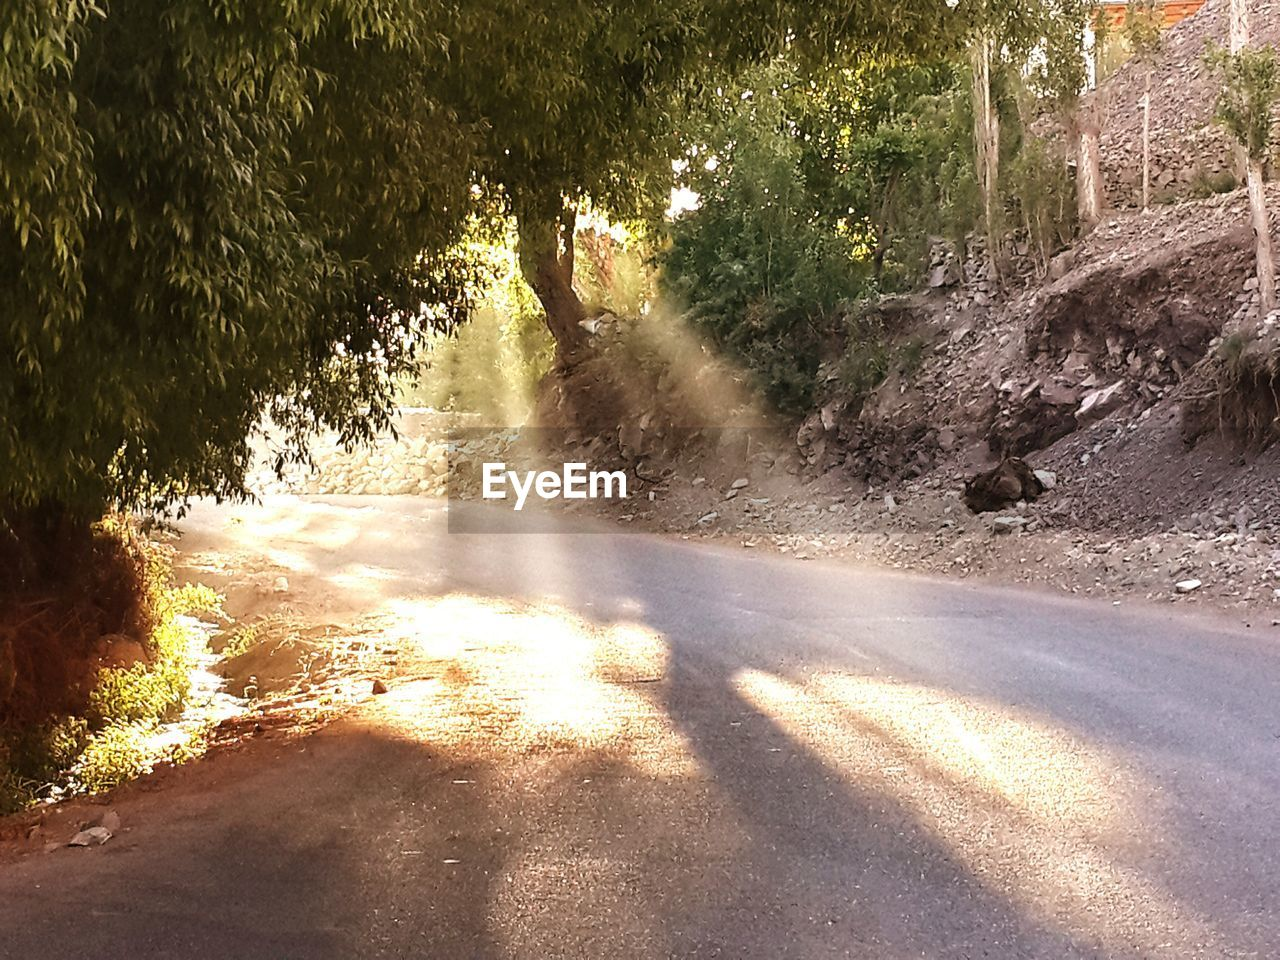 sunlight, tree, day, shadow, nature, no people, outdoors, water, road, beauty in nature, sky